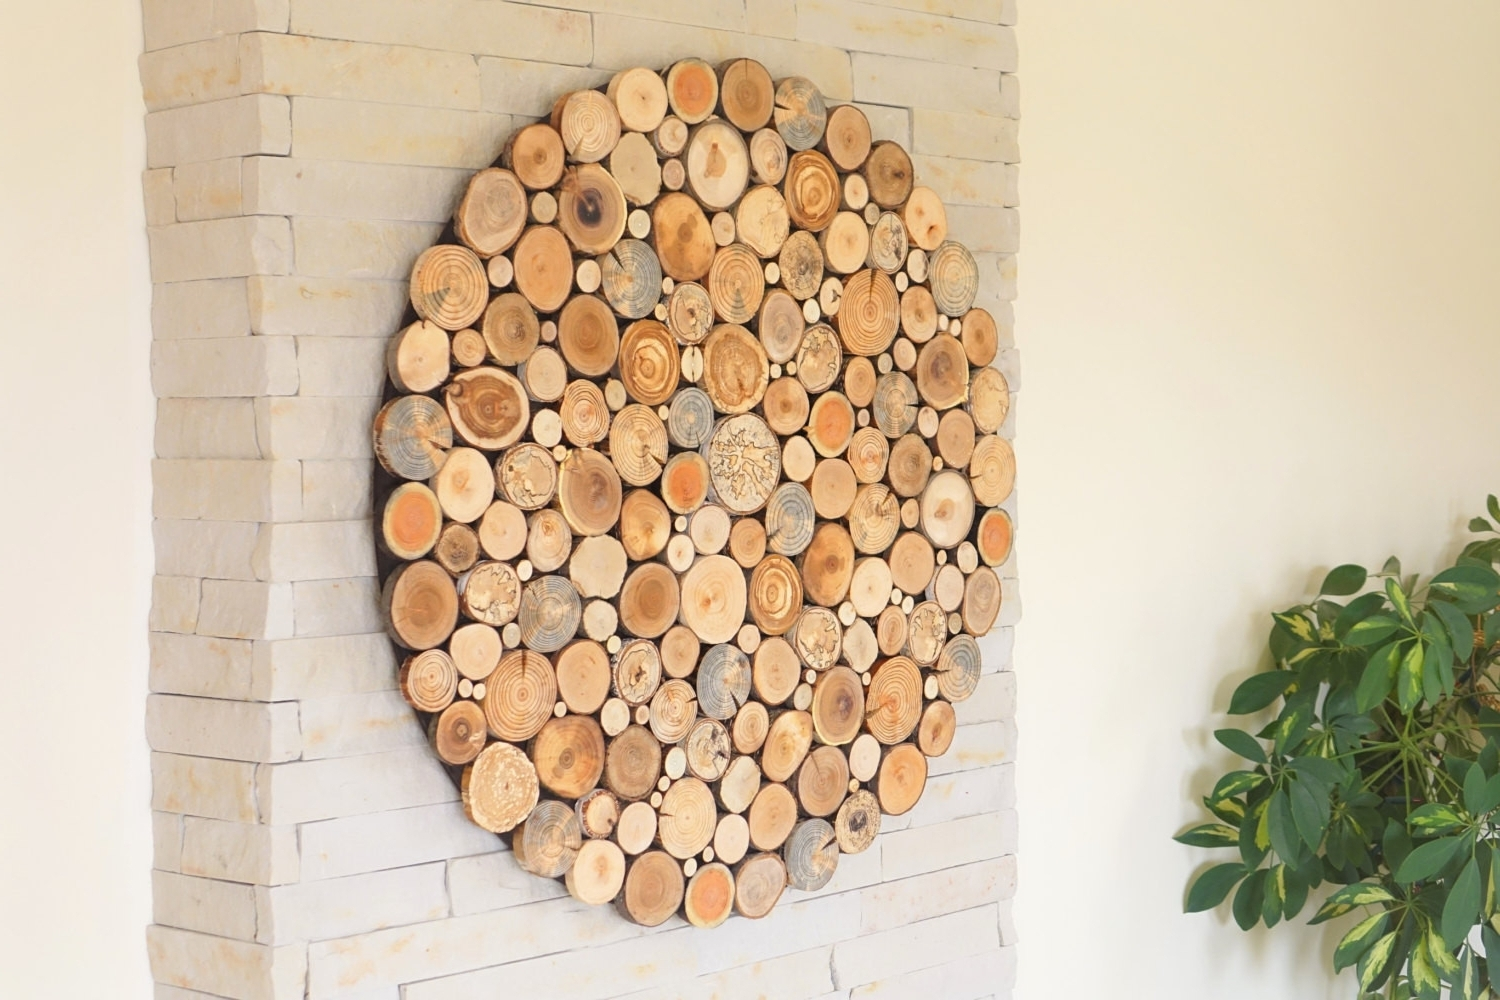 Wood Slice Wall Art Wooden Wall Decoration Purplebirdblog Pertaining To Most Recently Released Wooden Wall Art (View 12 of 15)